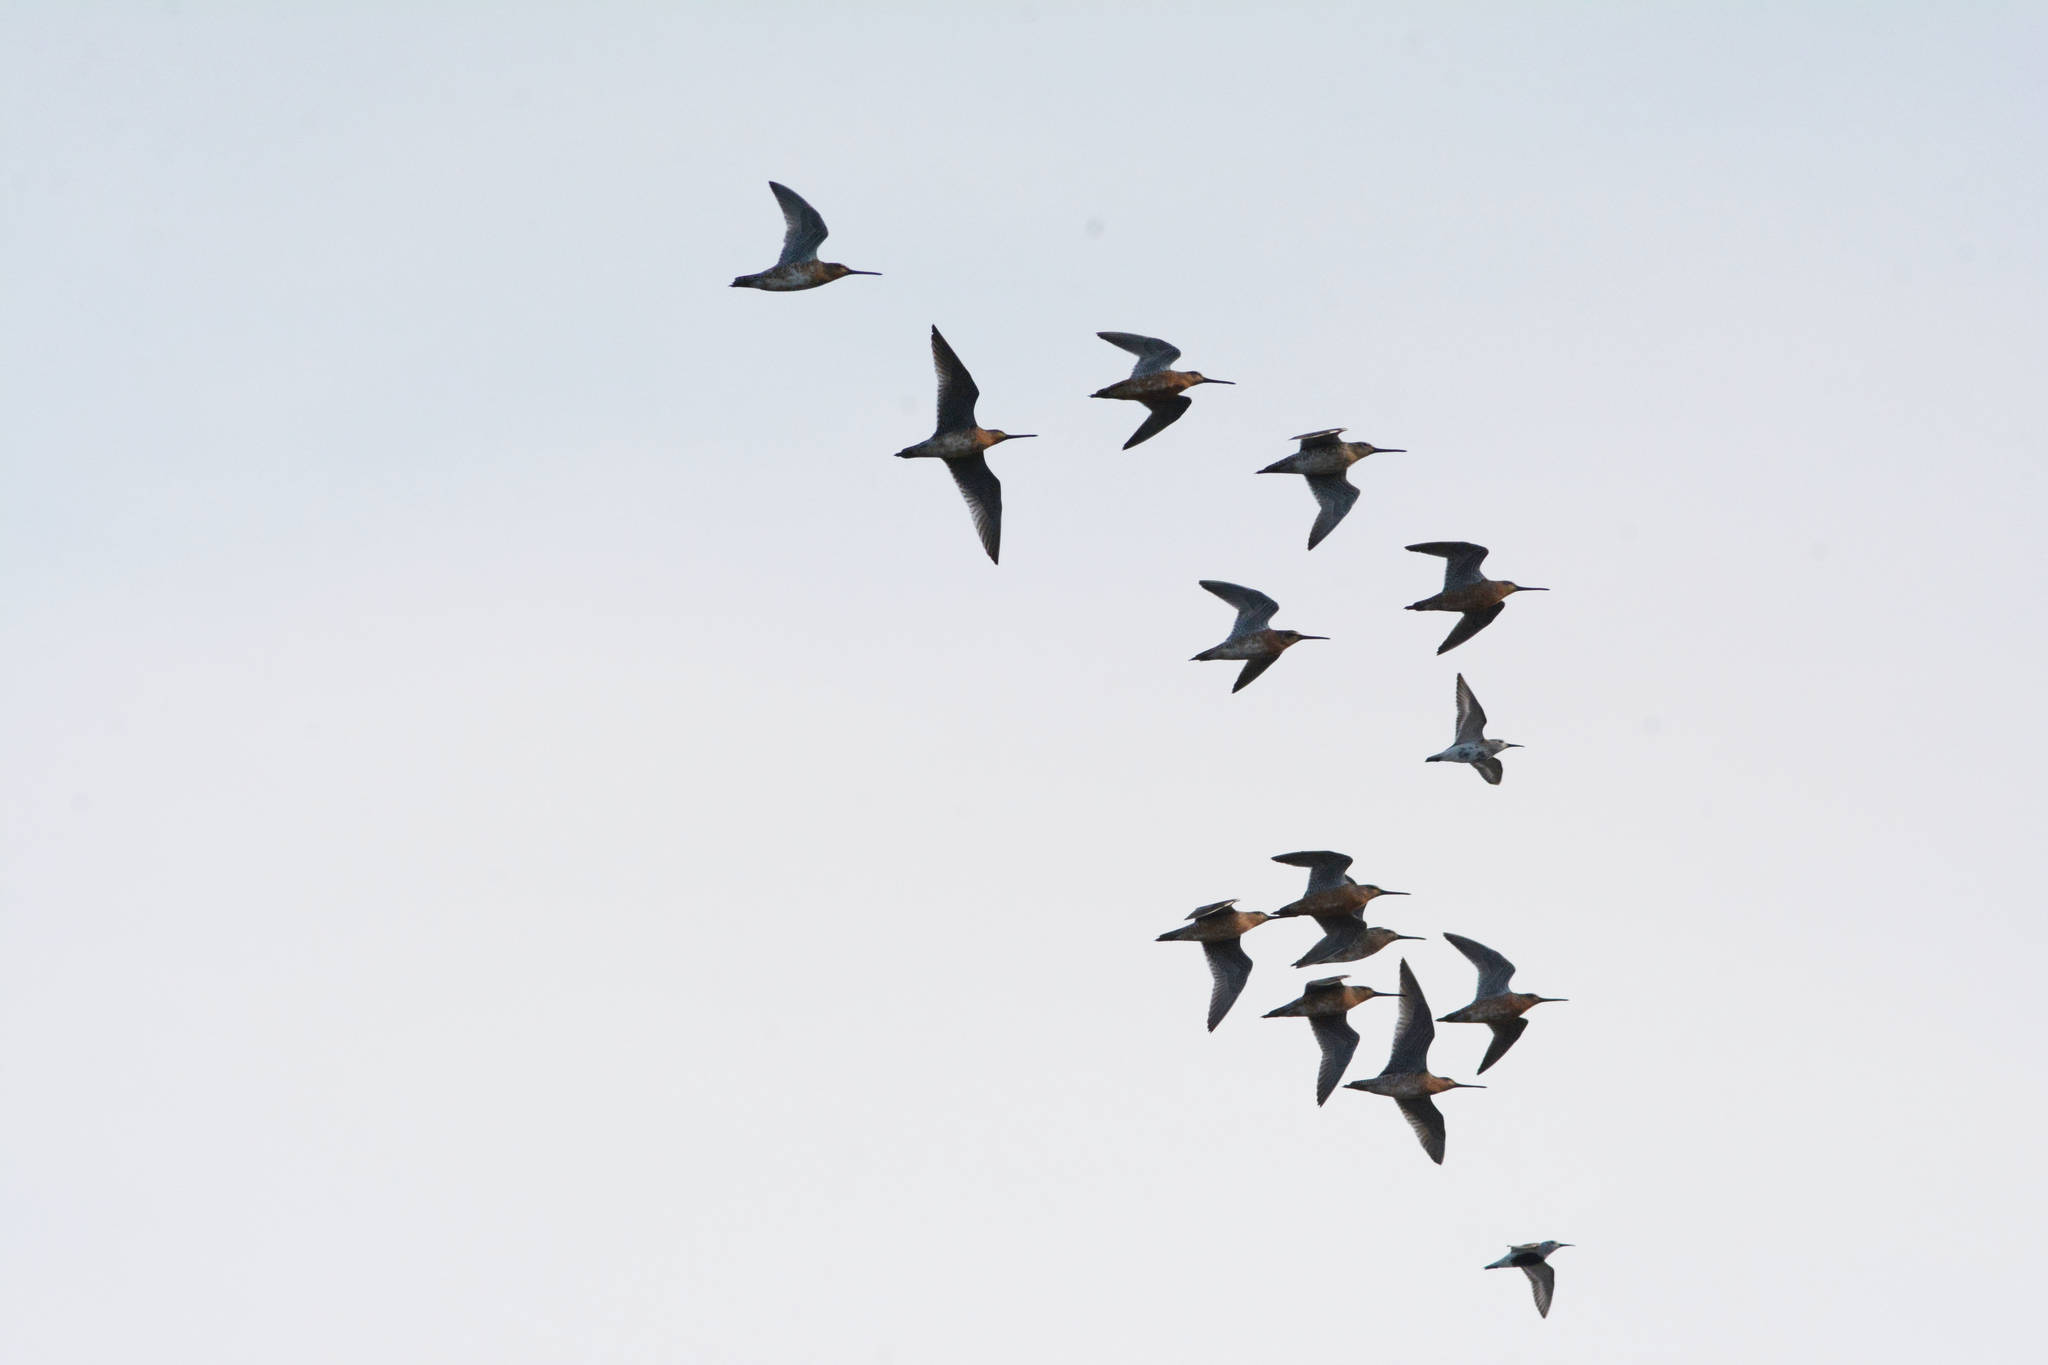 Long-billed dowitchers fly on Saturday, May 1, 2021, at Mud Bay near the Homer Spit in Homer, Alaska. The birds were one of several species of shorebirds seen in Mud Bay over the weekend that included bar-tailed godwits, western sandpipers, dunlins and Pacific plovers. (Photo by Michael Armstrong/Homer News)